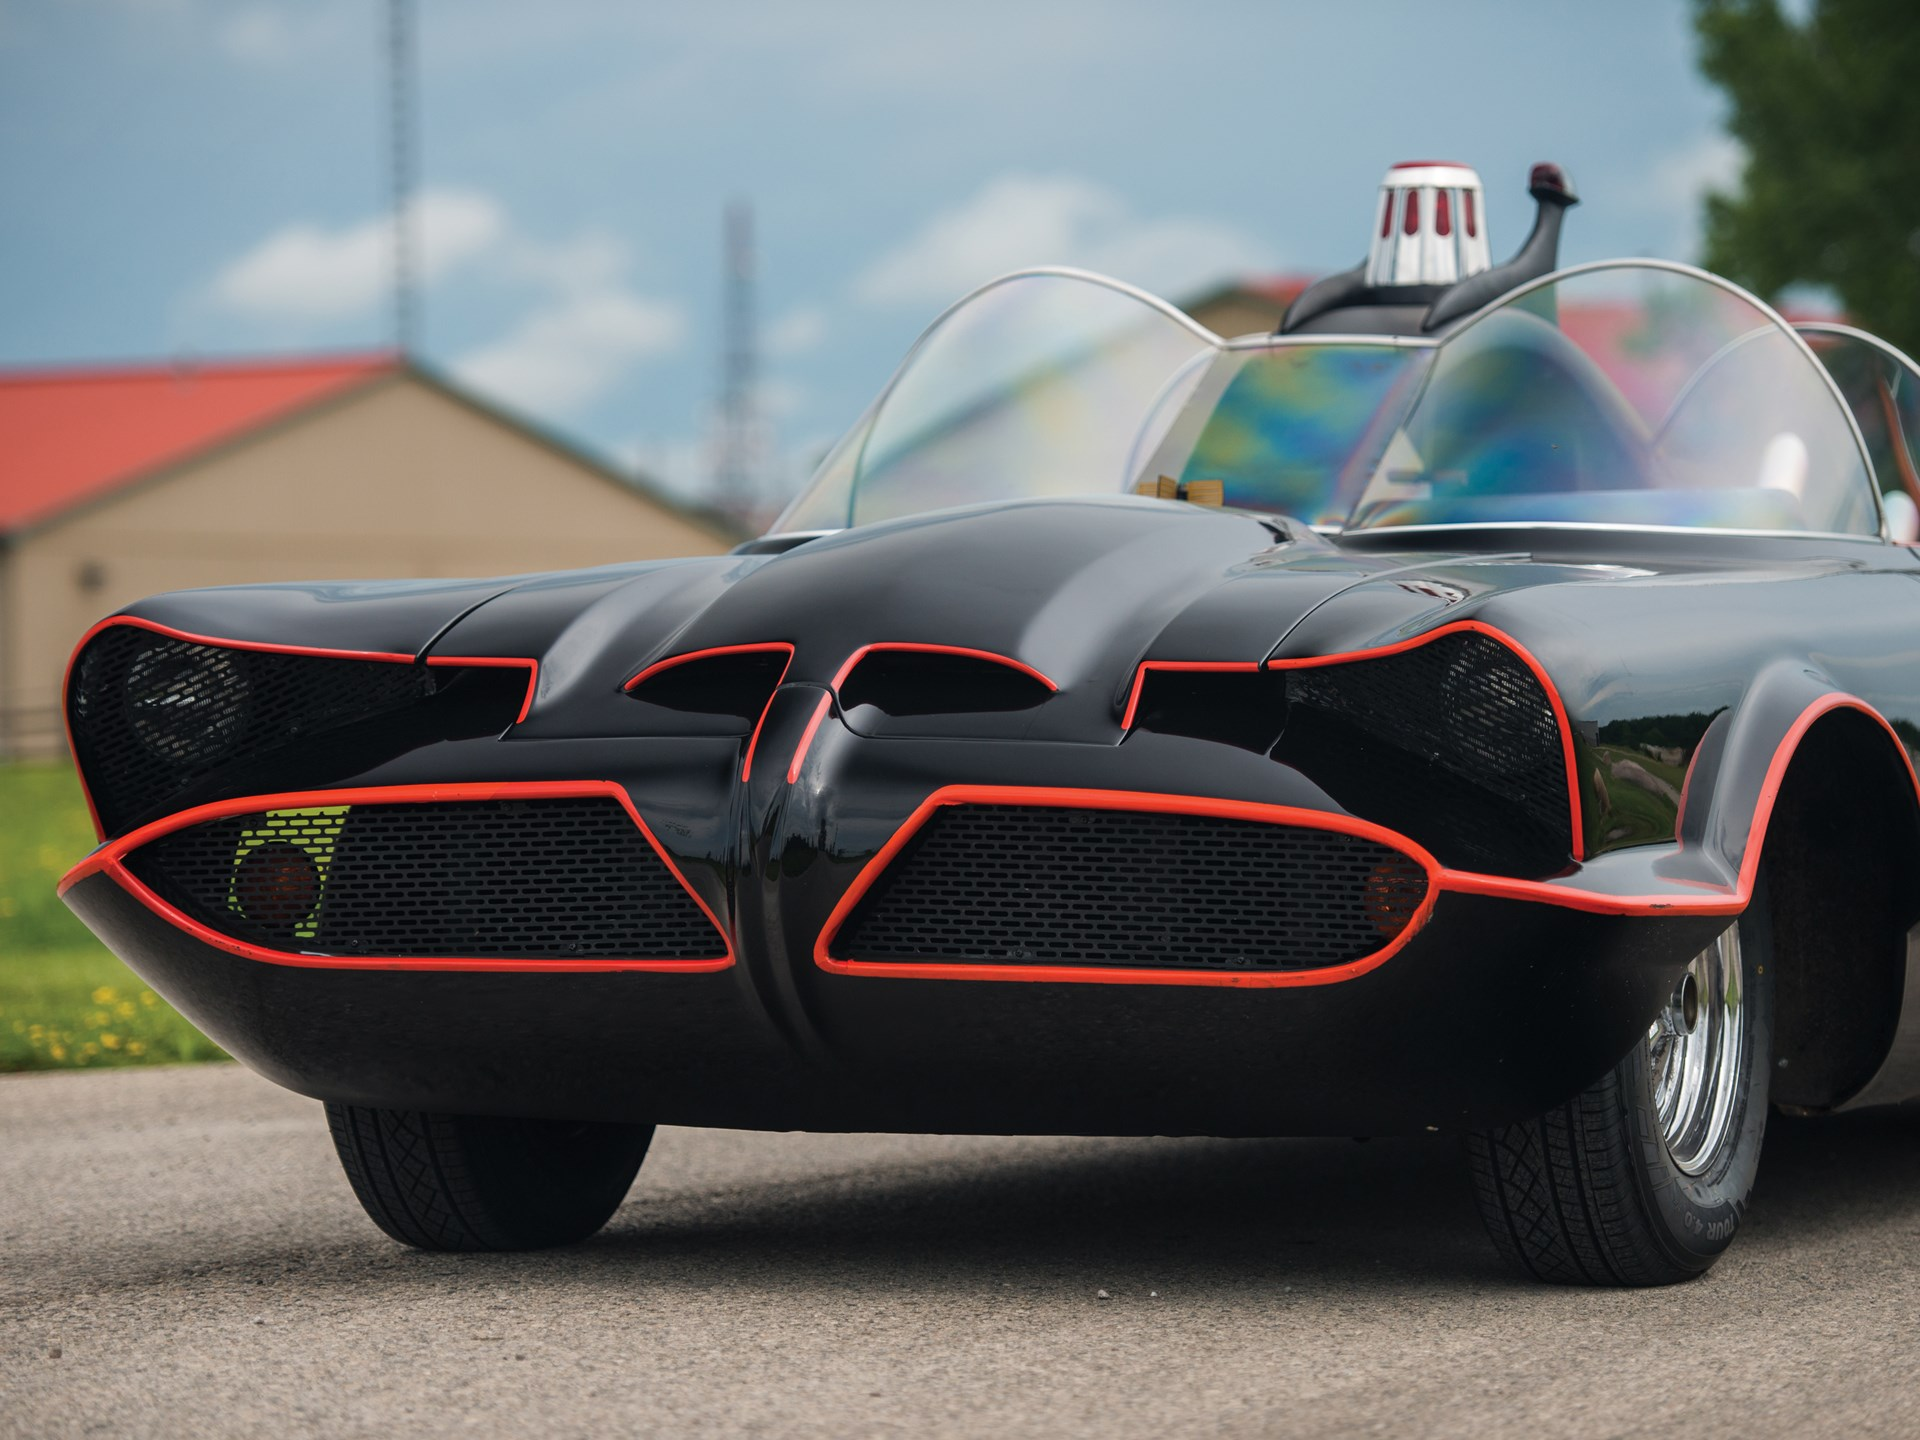 1966 Batmobile Recreation front grille